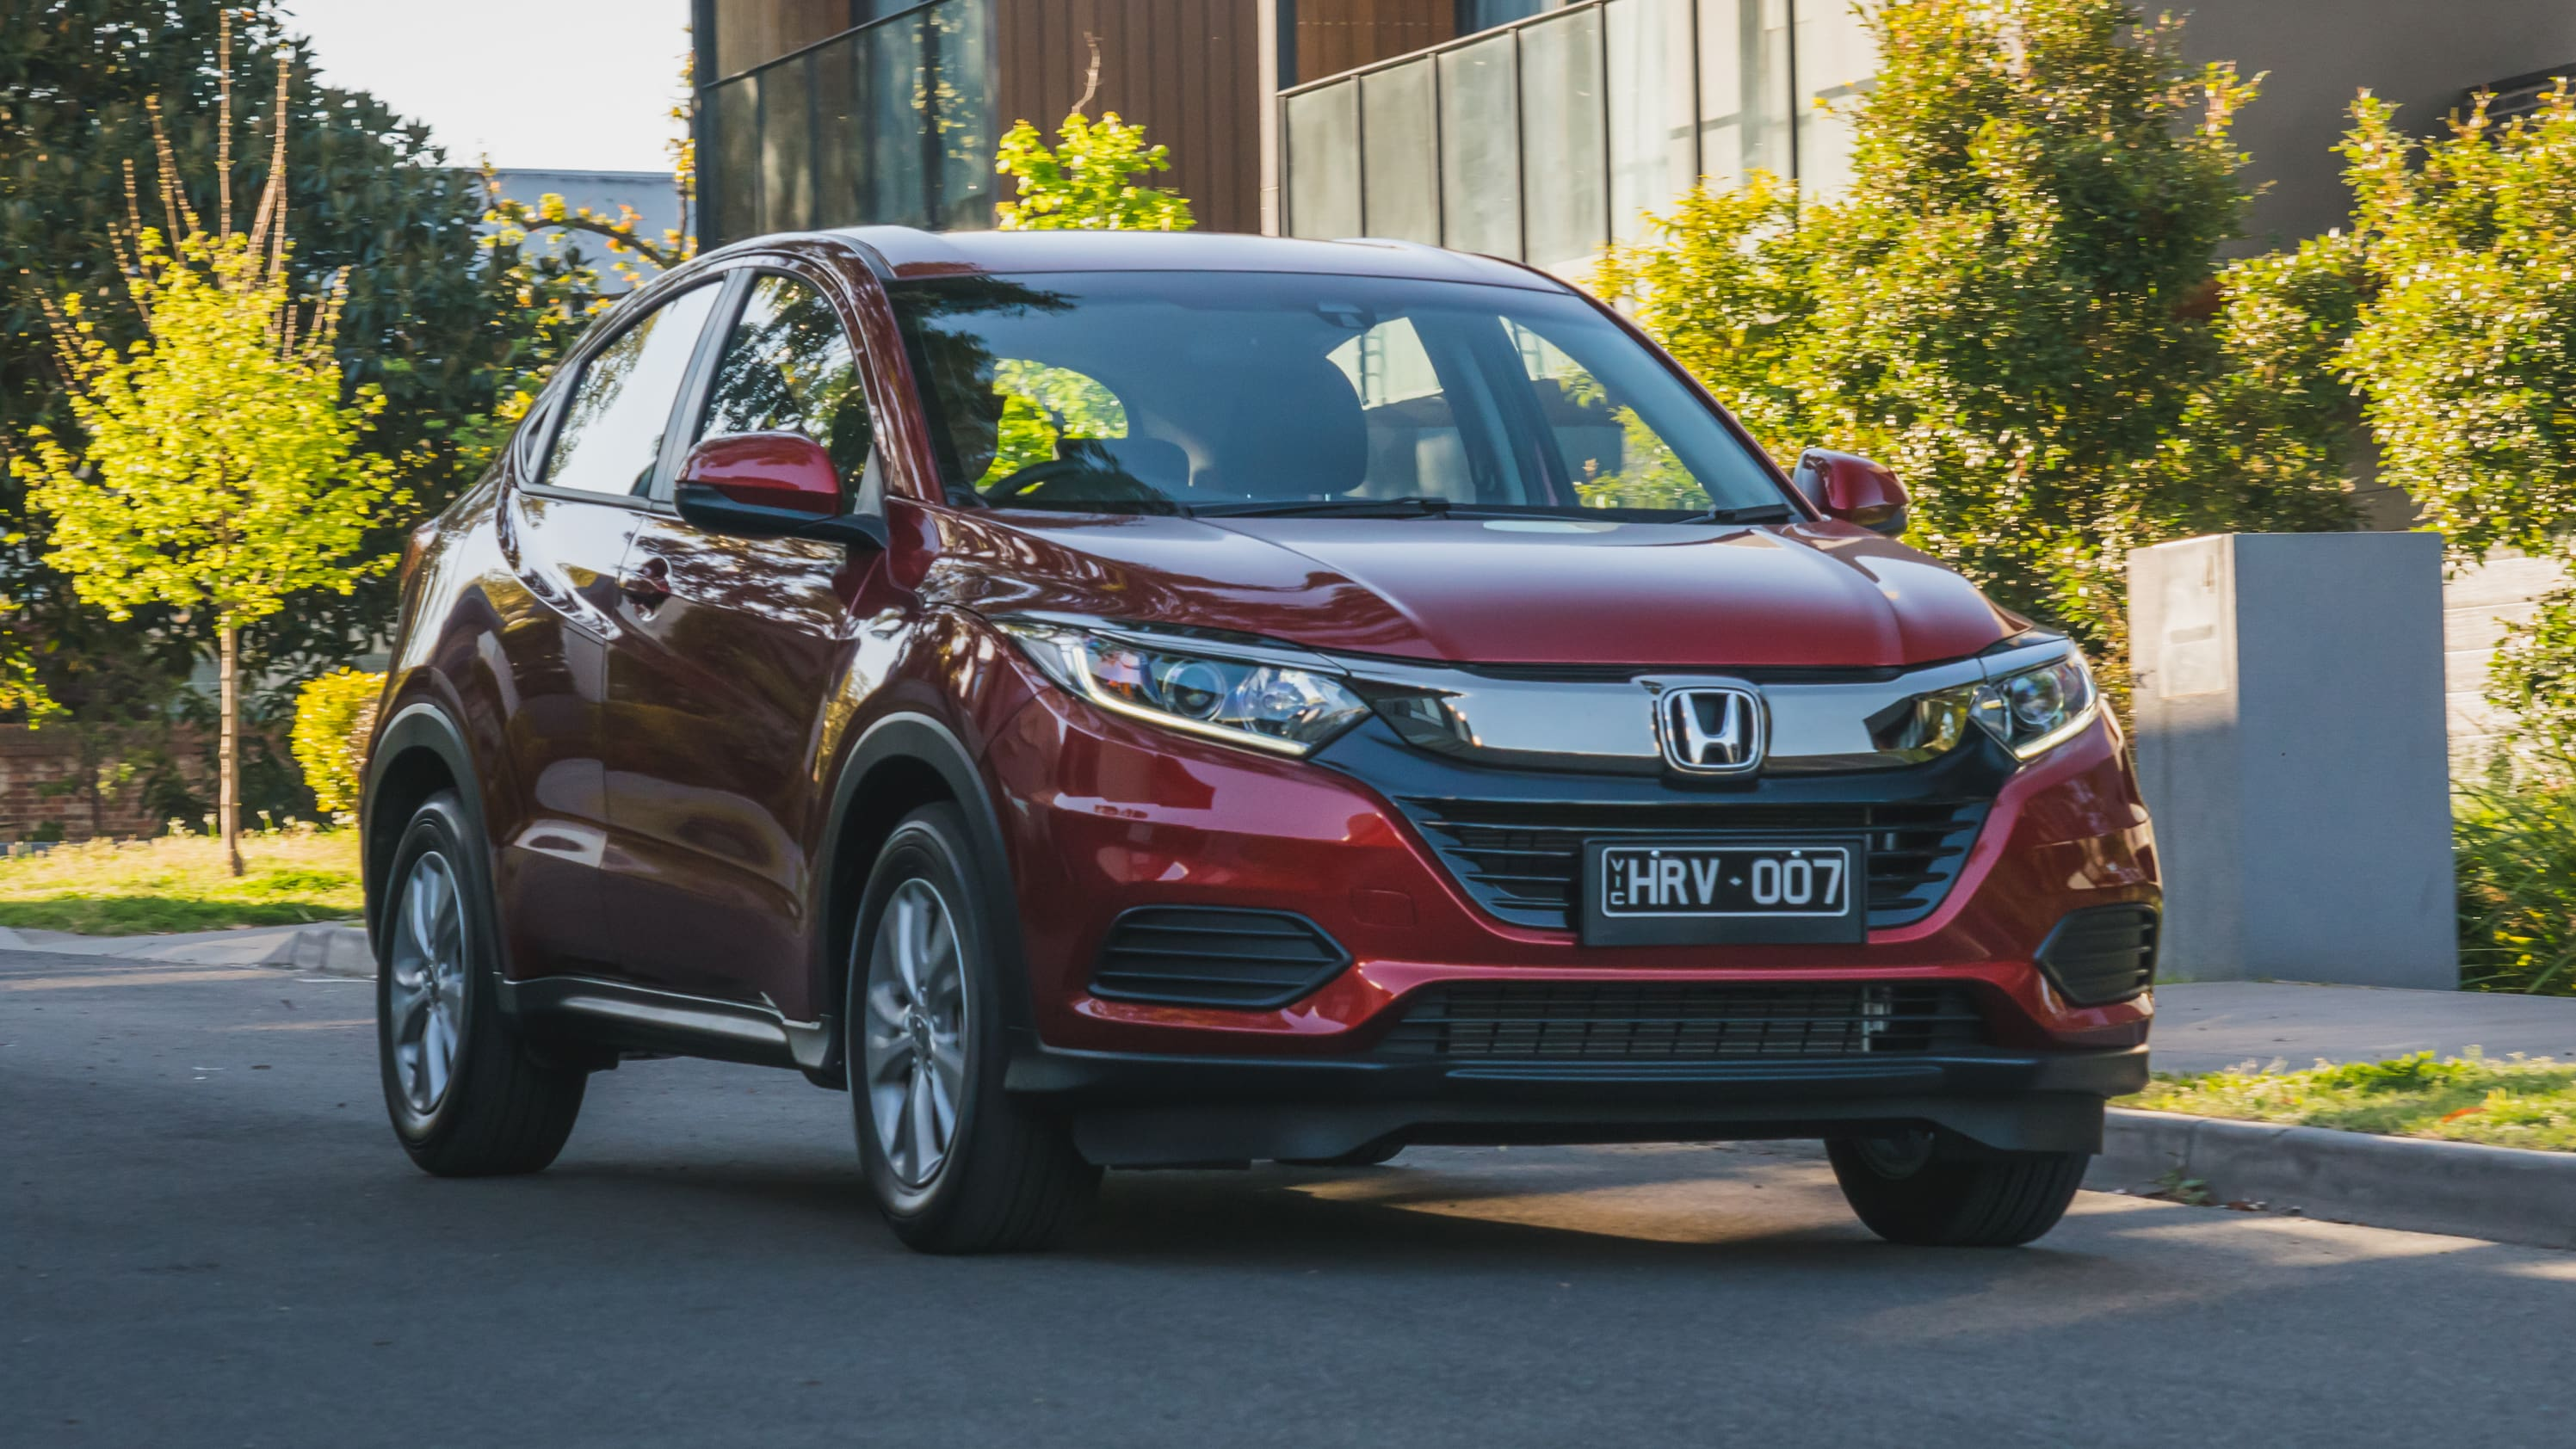 Honda Hrv Avis 2019 Honda Hr V Rs Review Caradvice